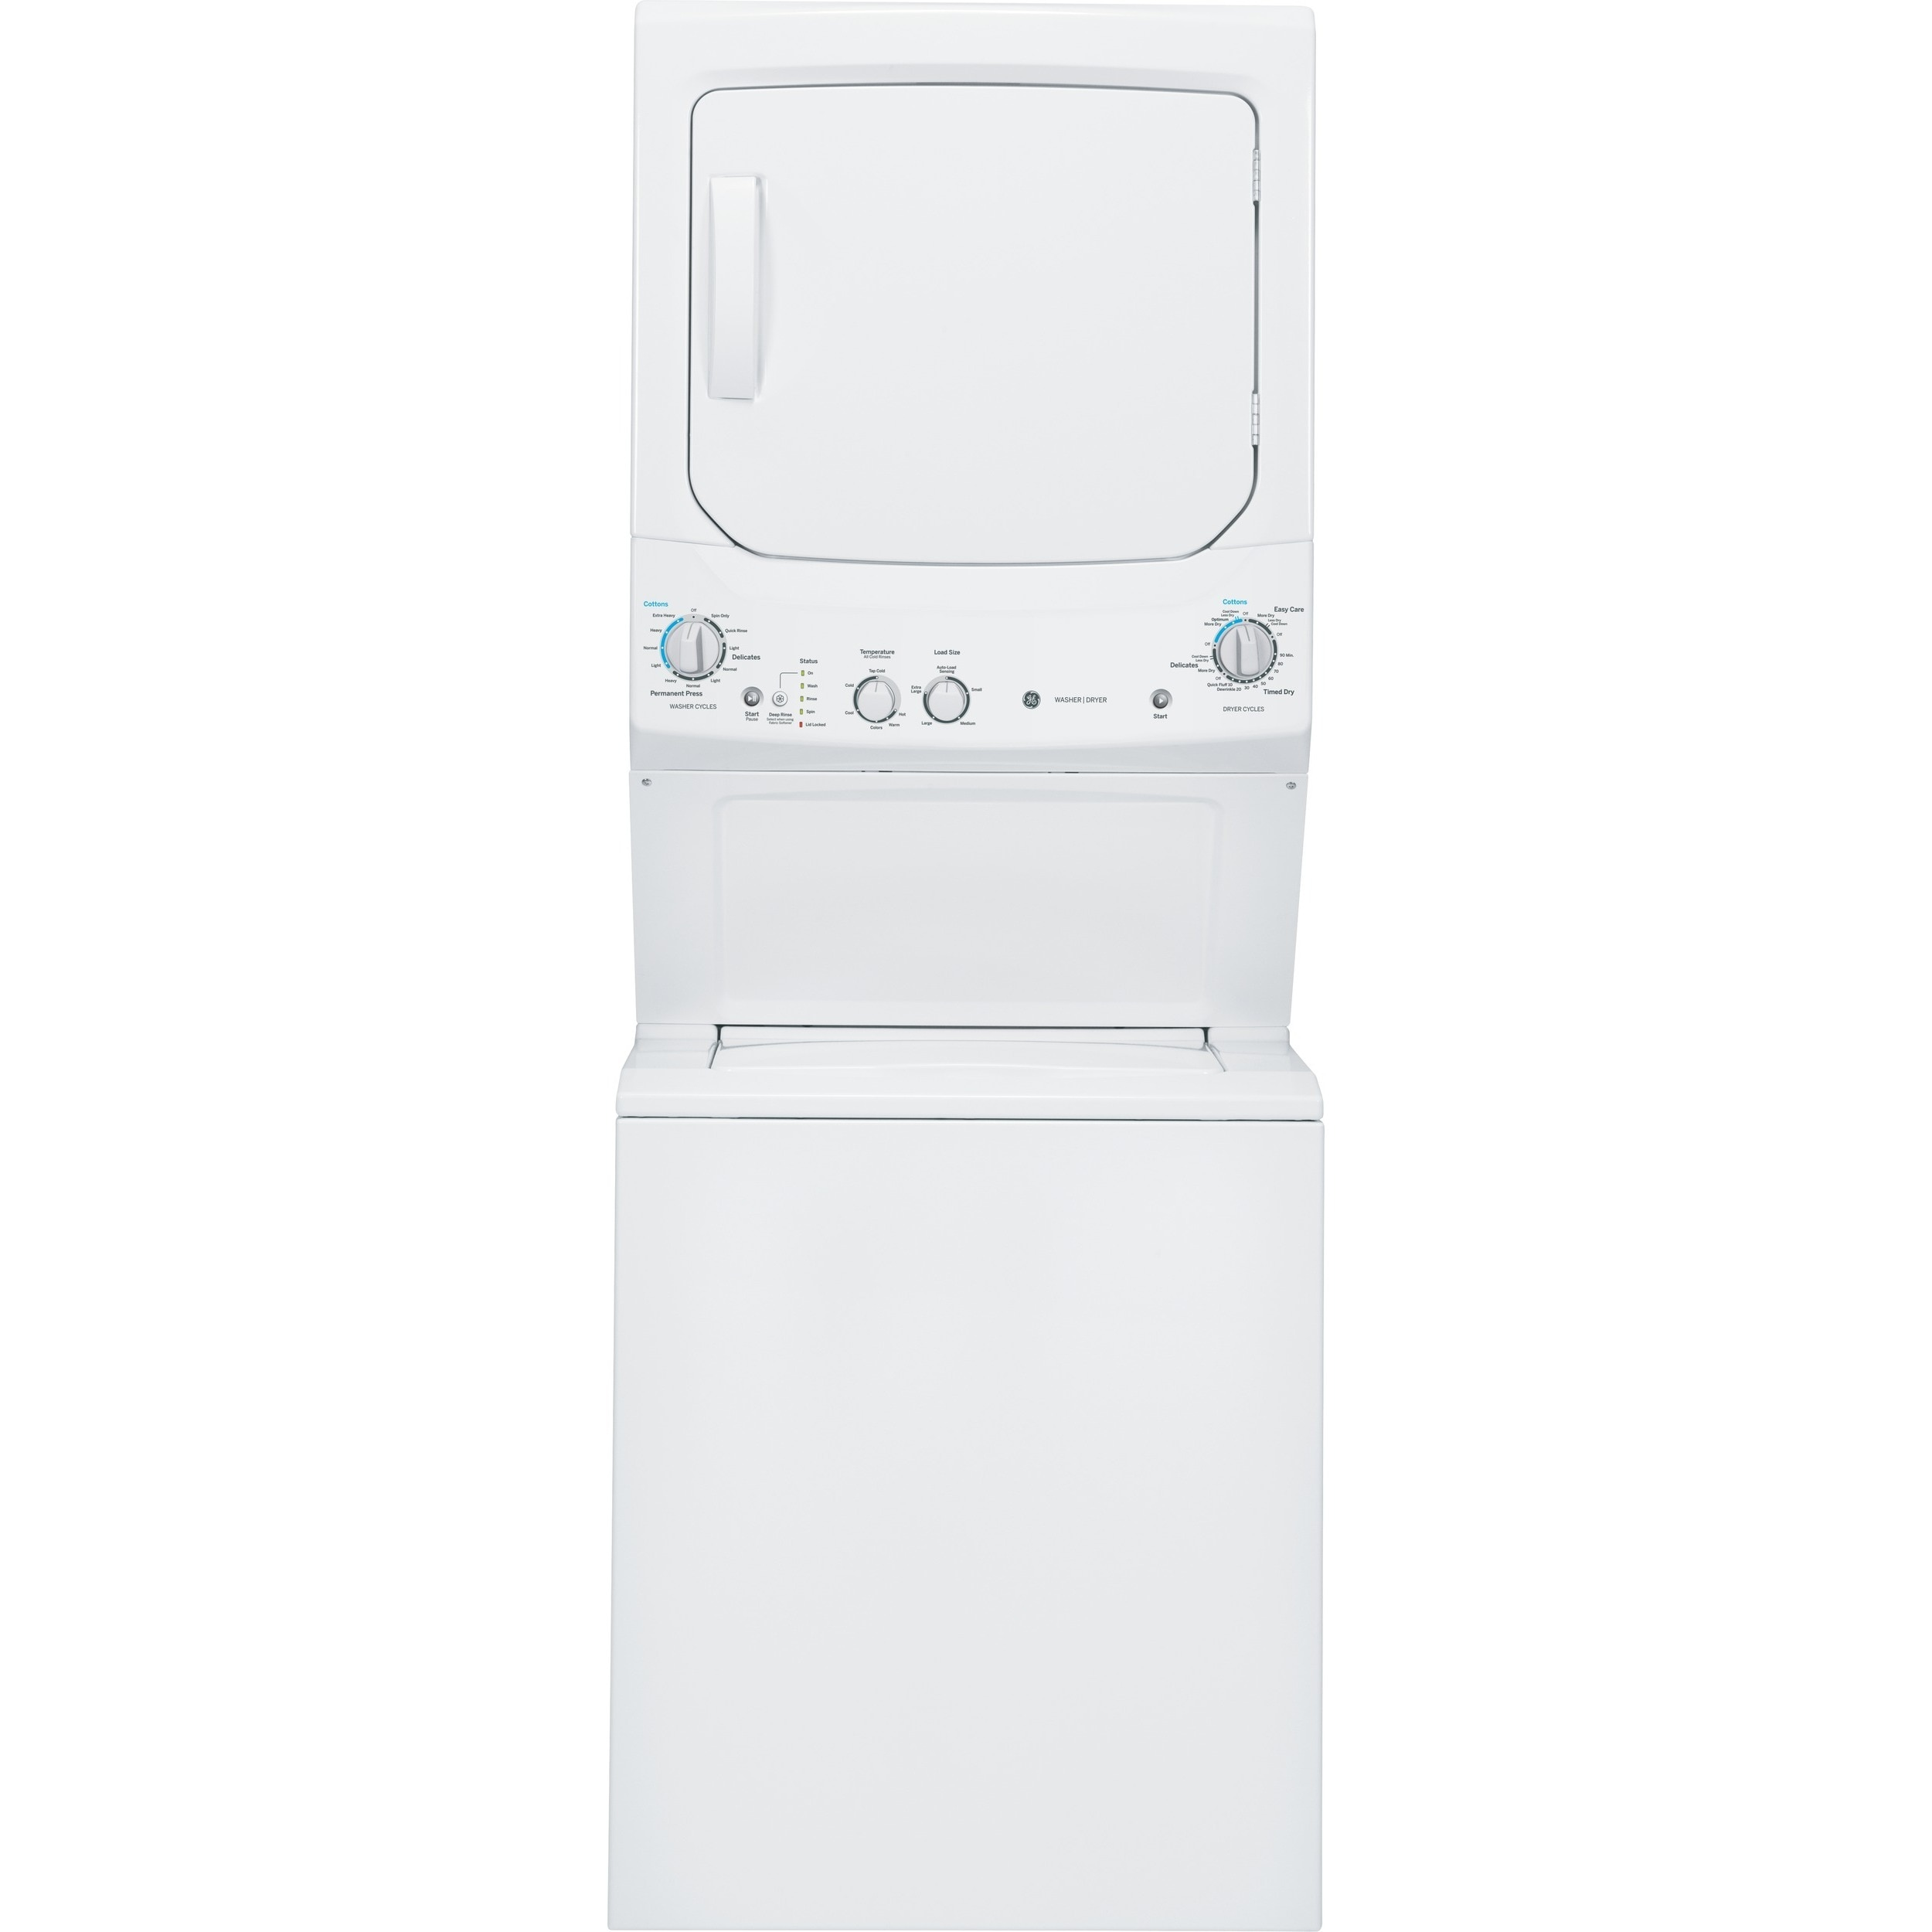 GE Unitized Spacemaker 3.2-cubic Feet Washer and 5.9-cubi...